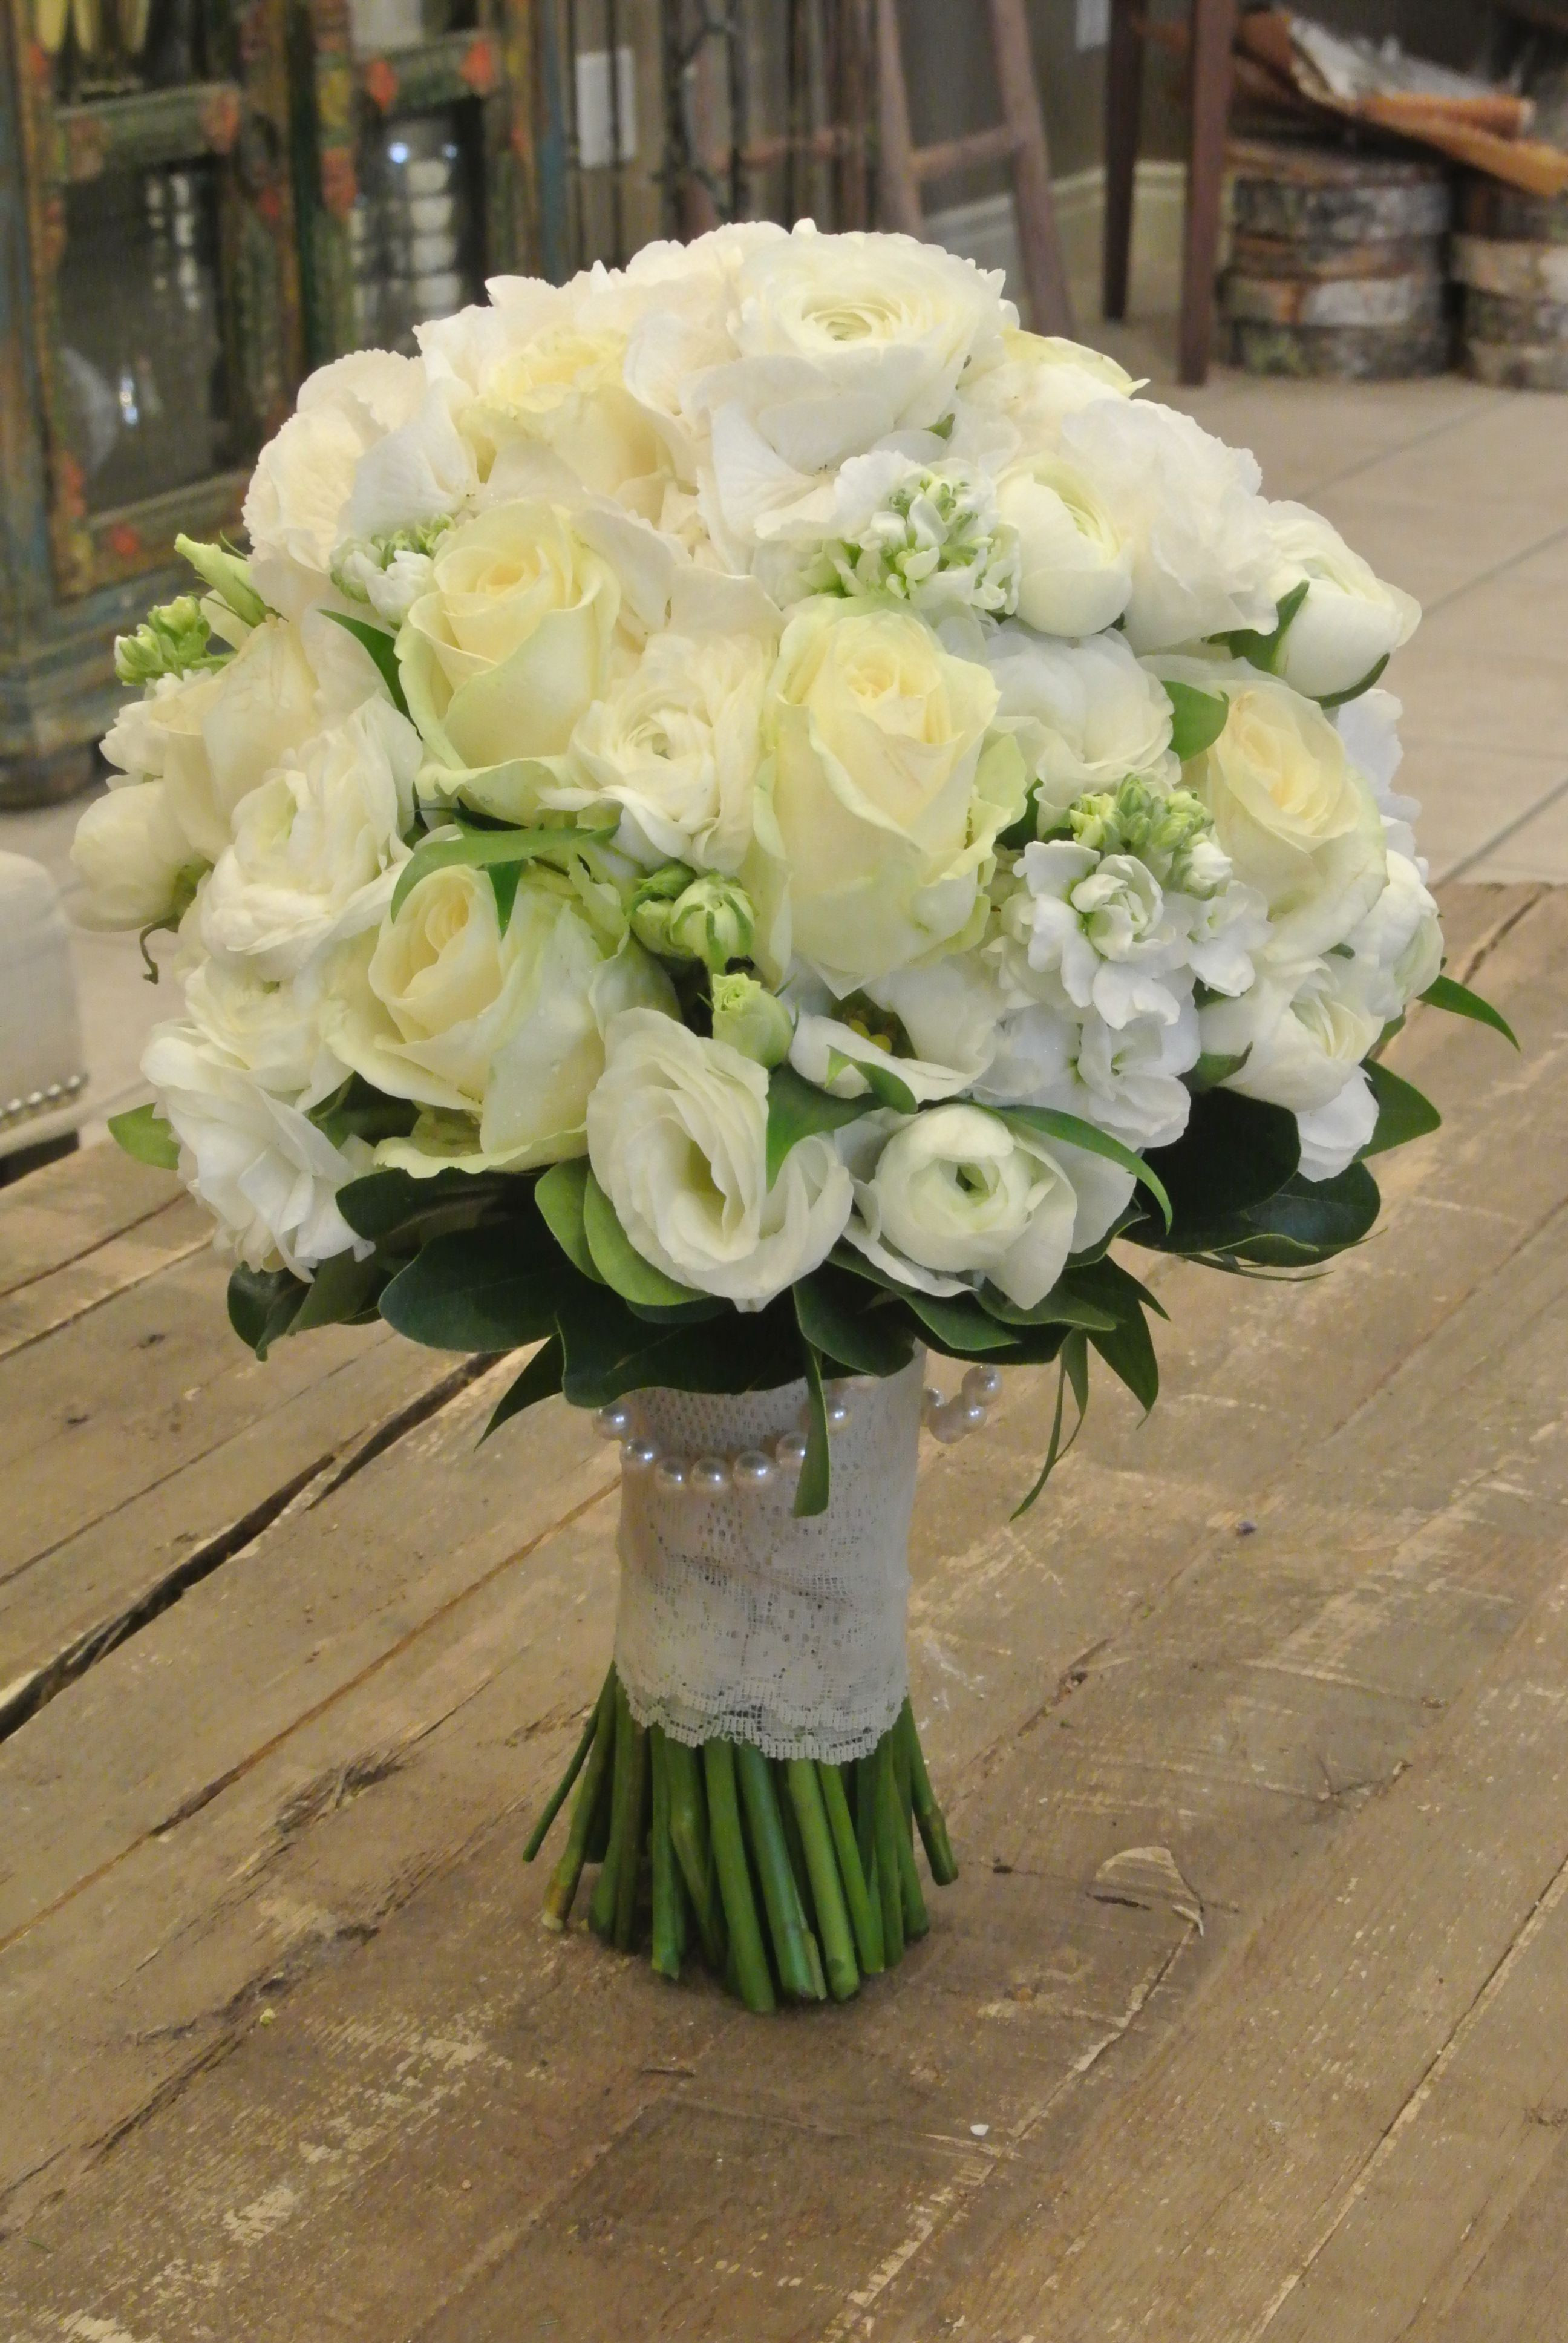 Bridal bouquet with roses ranunculus lisianthus stocks and hydrangea Designed by For Me Not FLowers